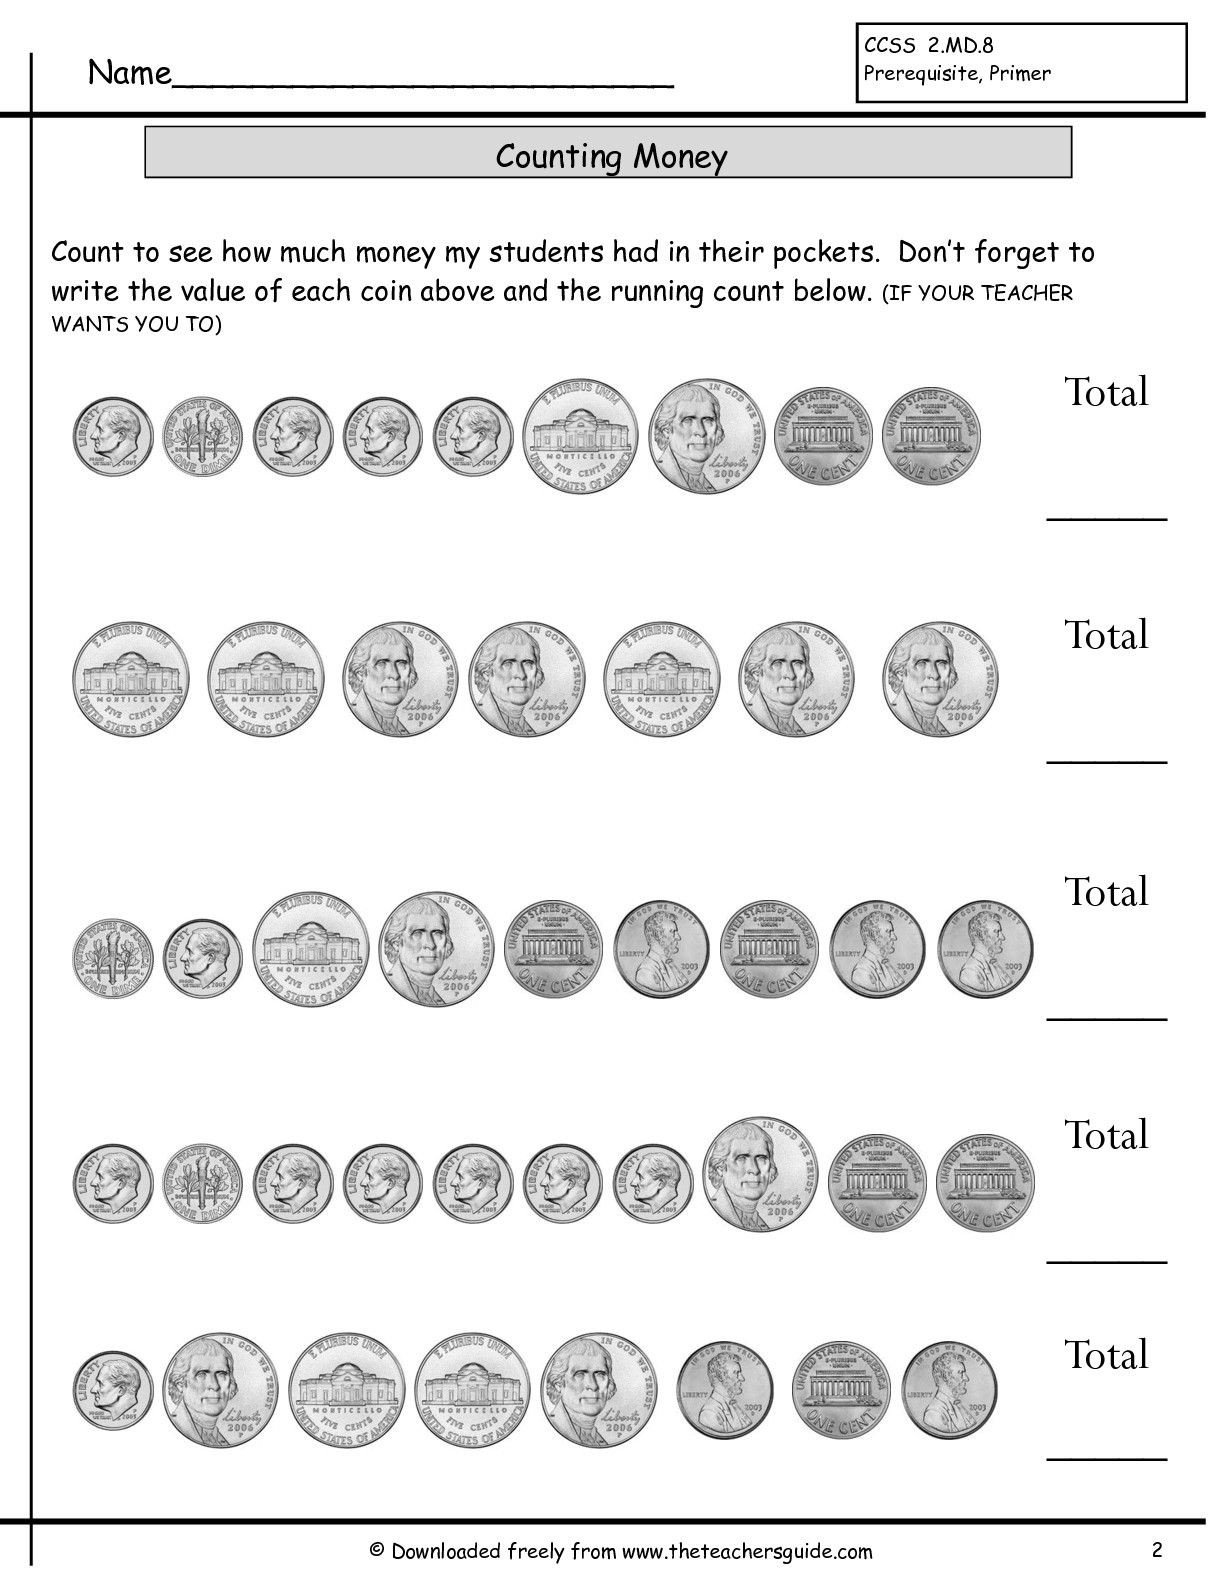 Counting Coins Worksheets 2nd Grade Counting Coins Worksheet with Images